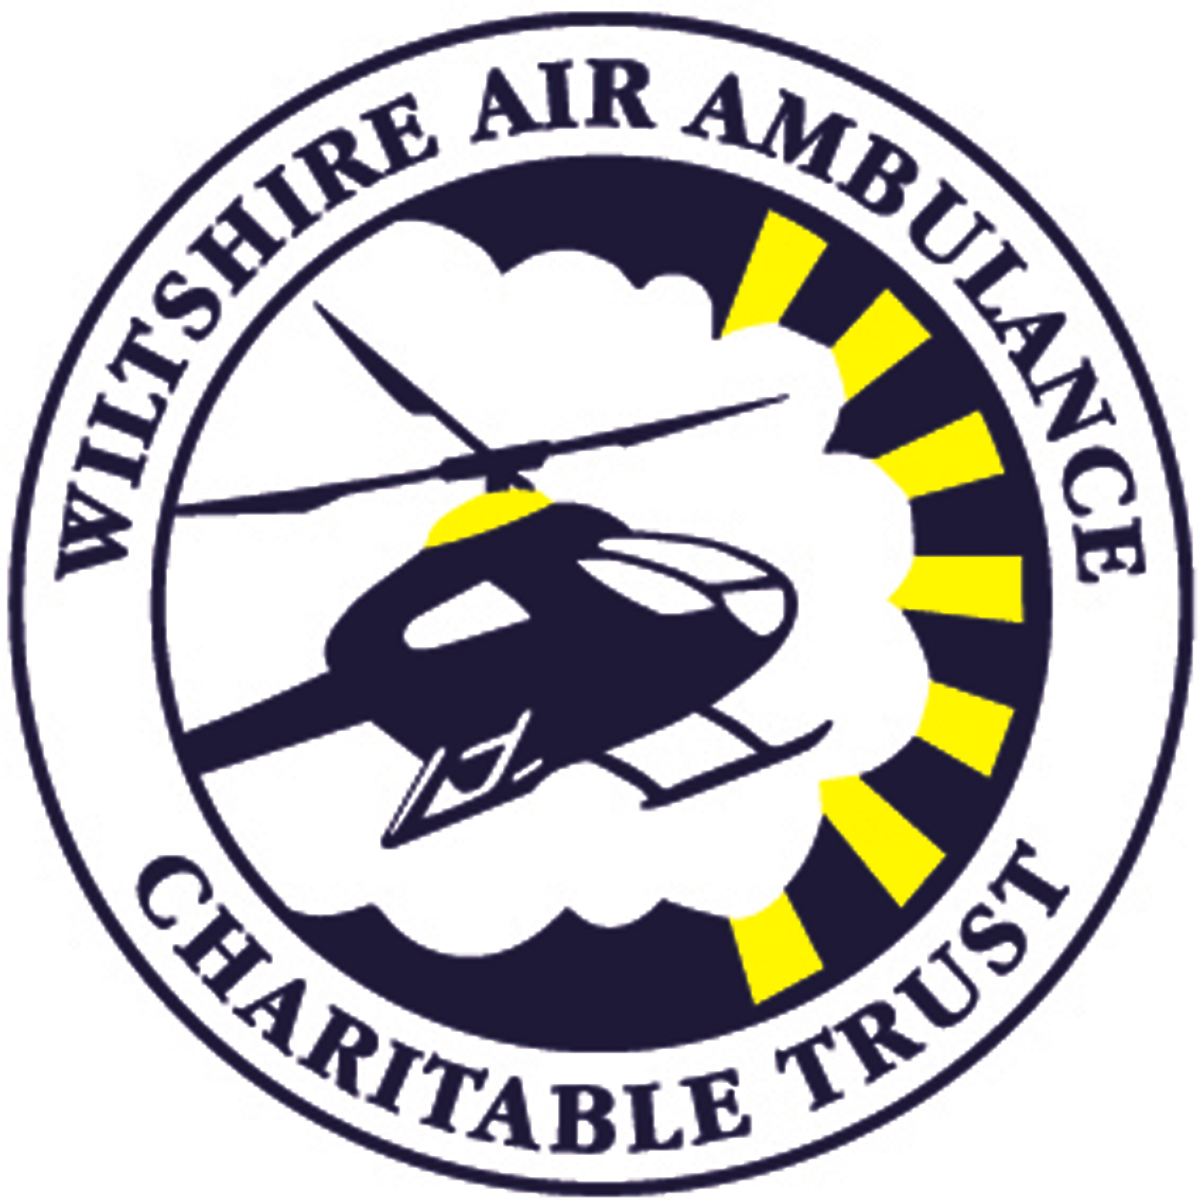 The air ambulance charitable trust will need to raise £2.5m annually